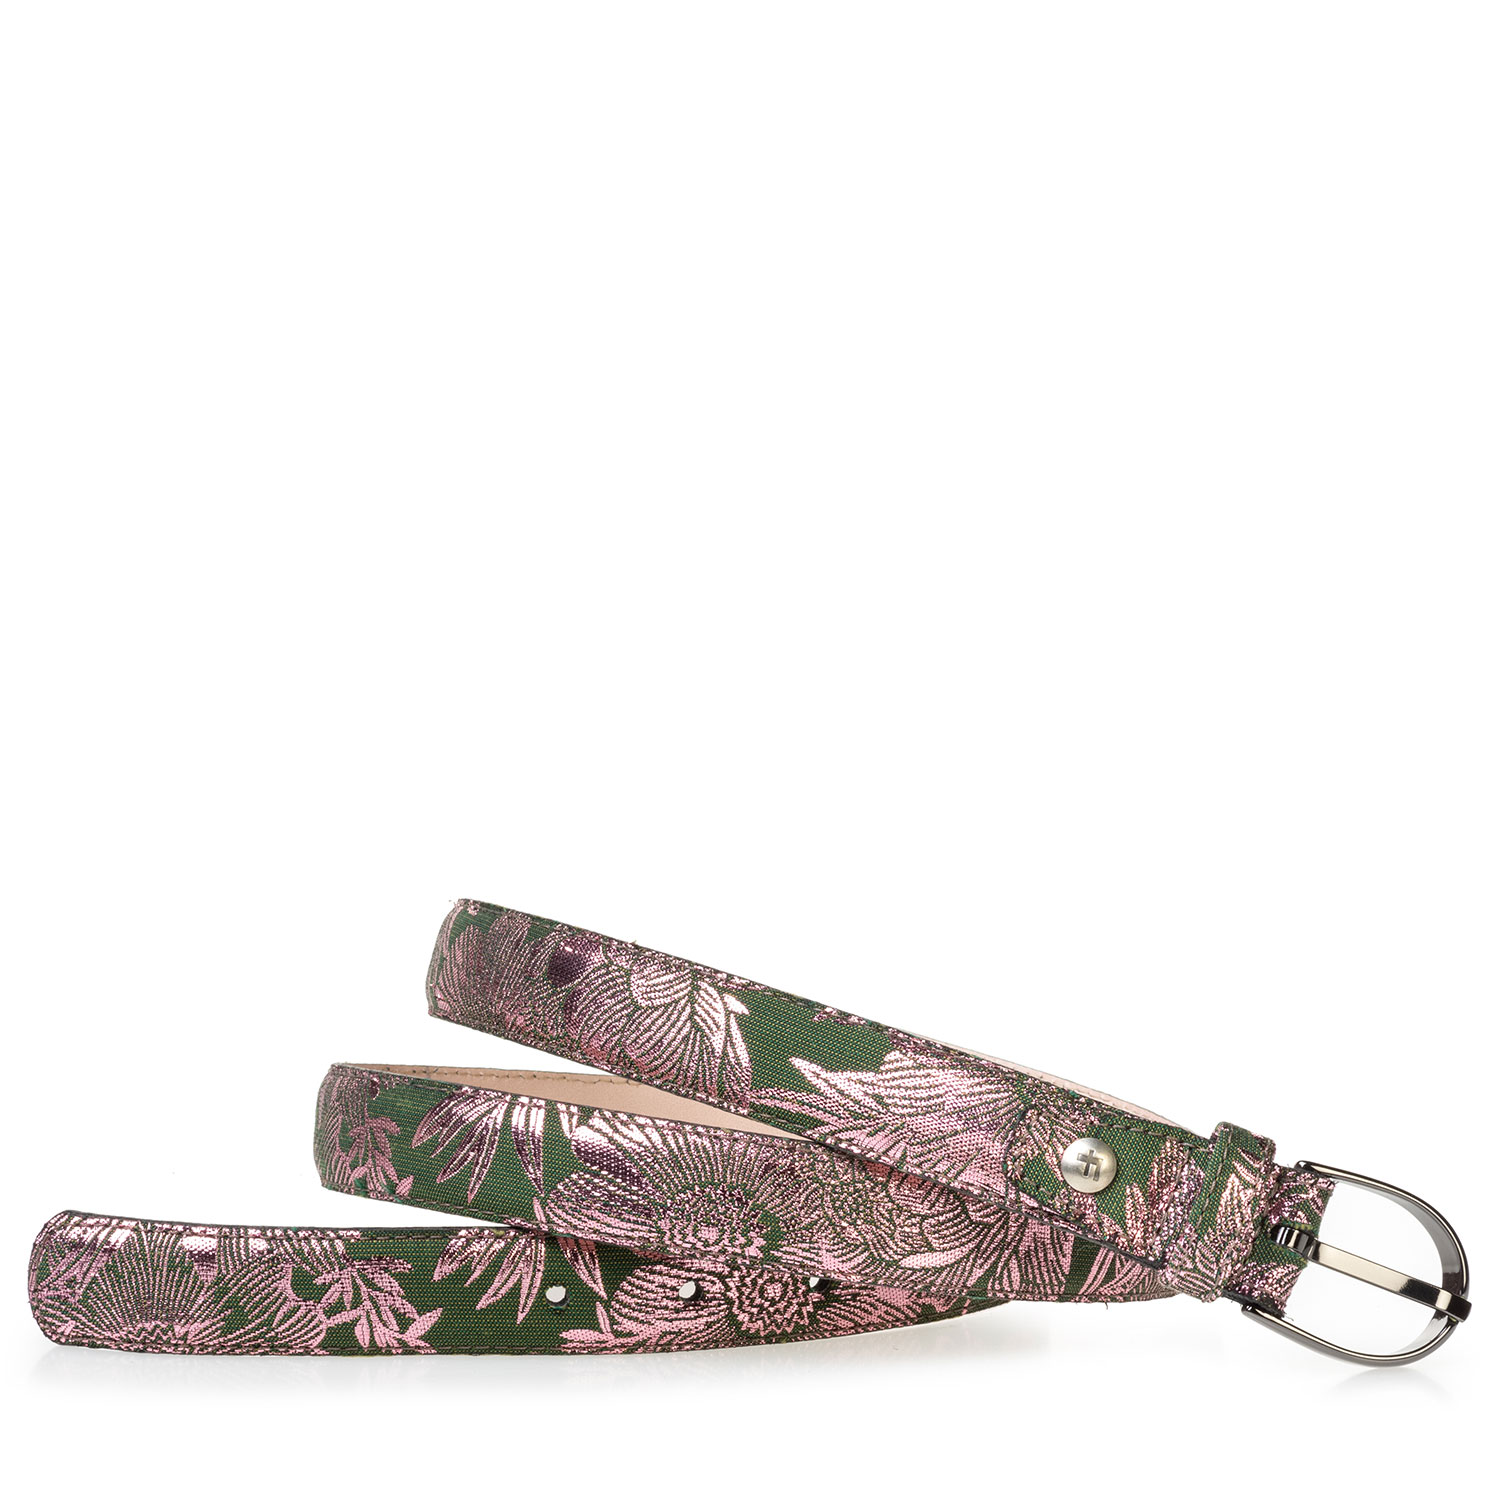 75813/77 - Women's belt green with pink print